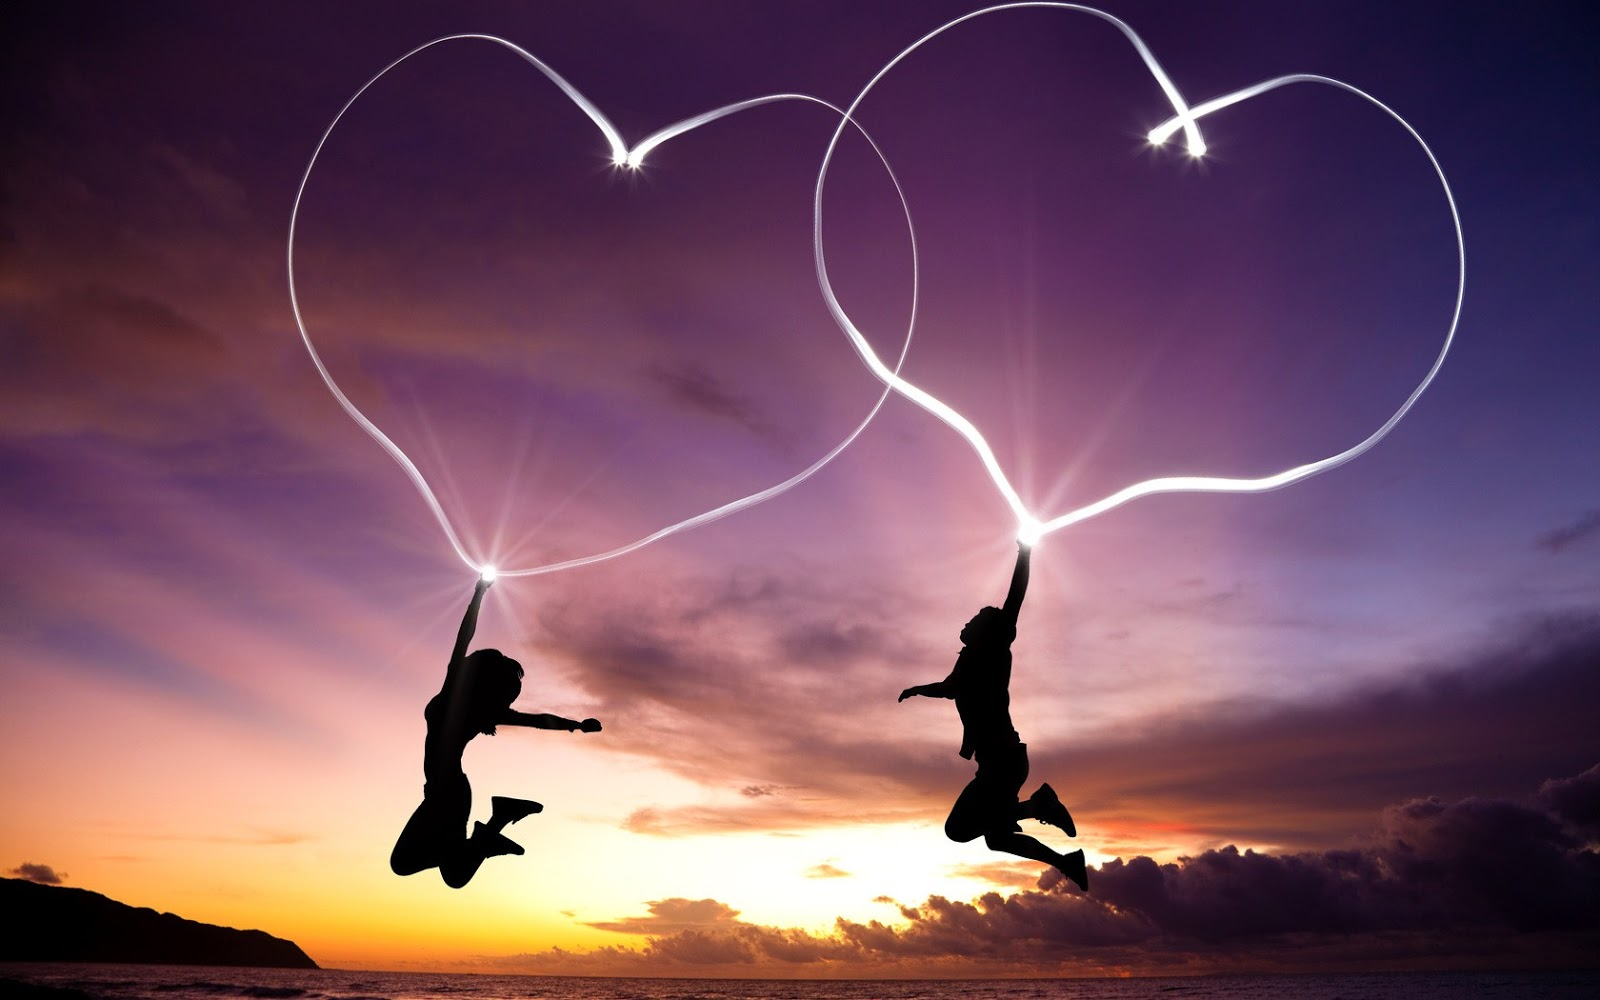 Love wallpapers free hd wallpapers romantic wallpapers - Love wallpapers hd ...